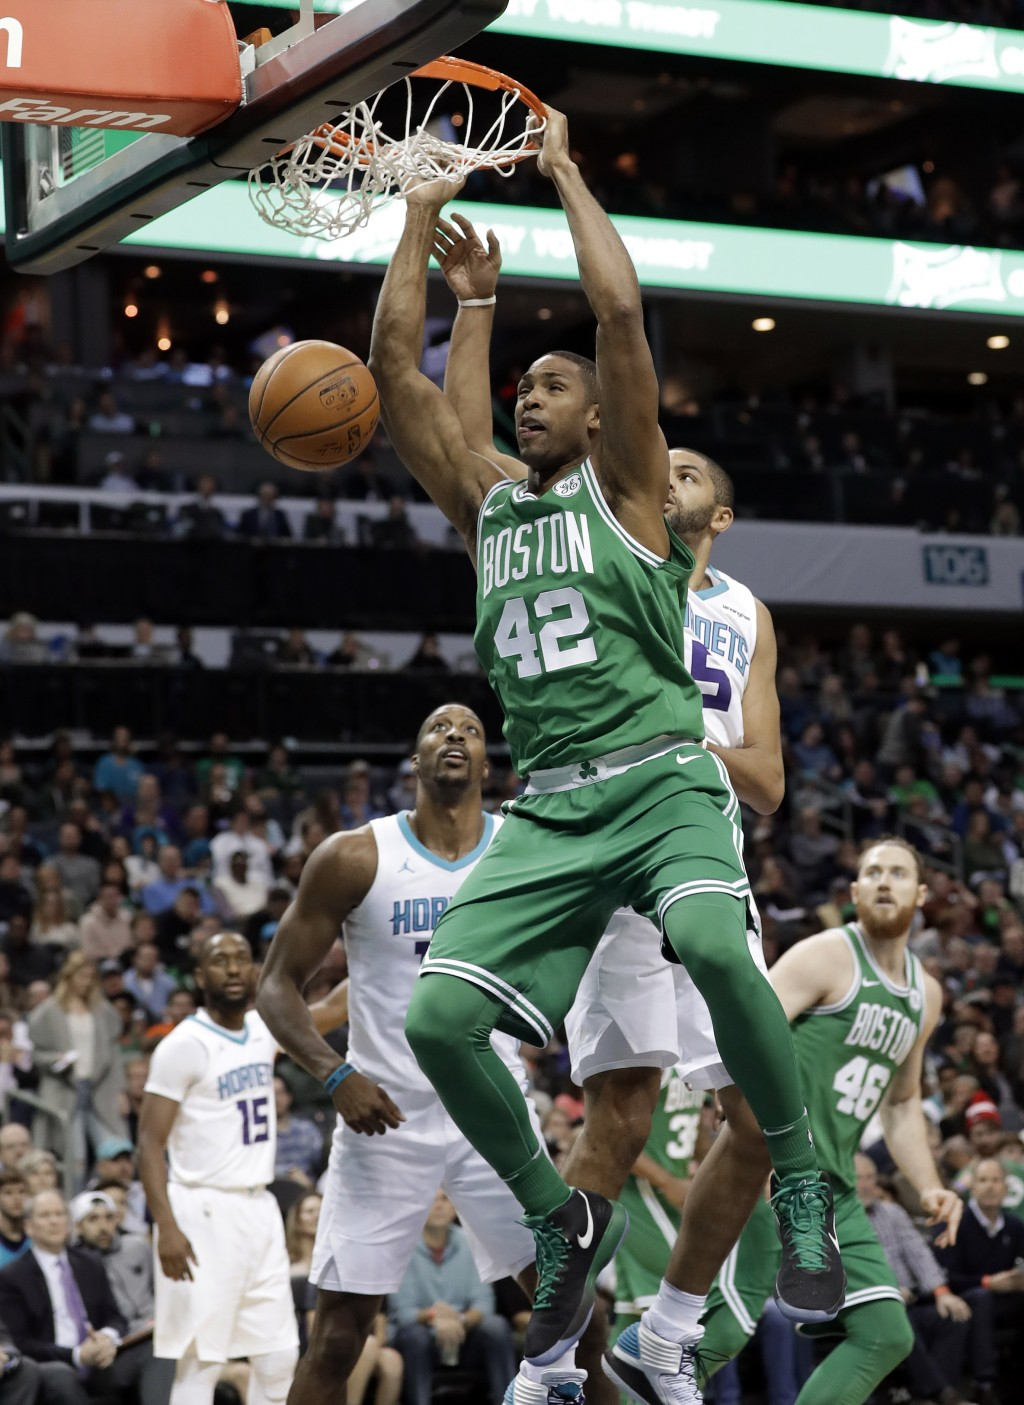 Boston Celtics' Al Horford (42) dunks past Charlotte Hornets' Nicolas Batum (5) during the first half of an NBA basketball game in Charlotte, N.C., We...